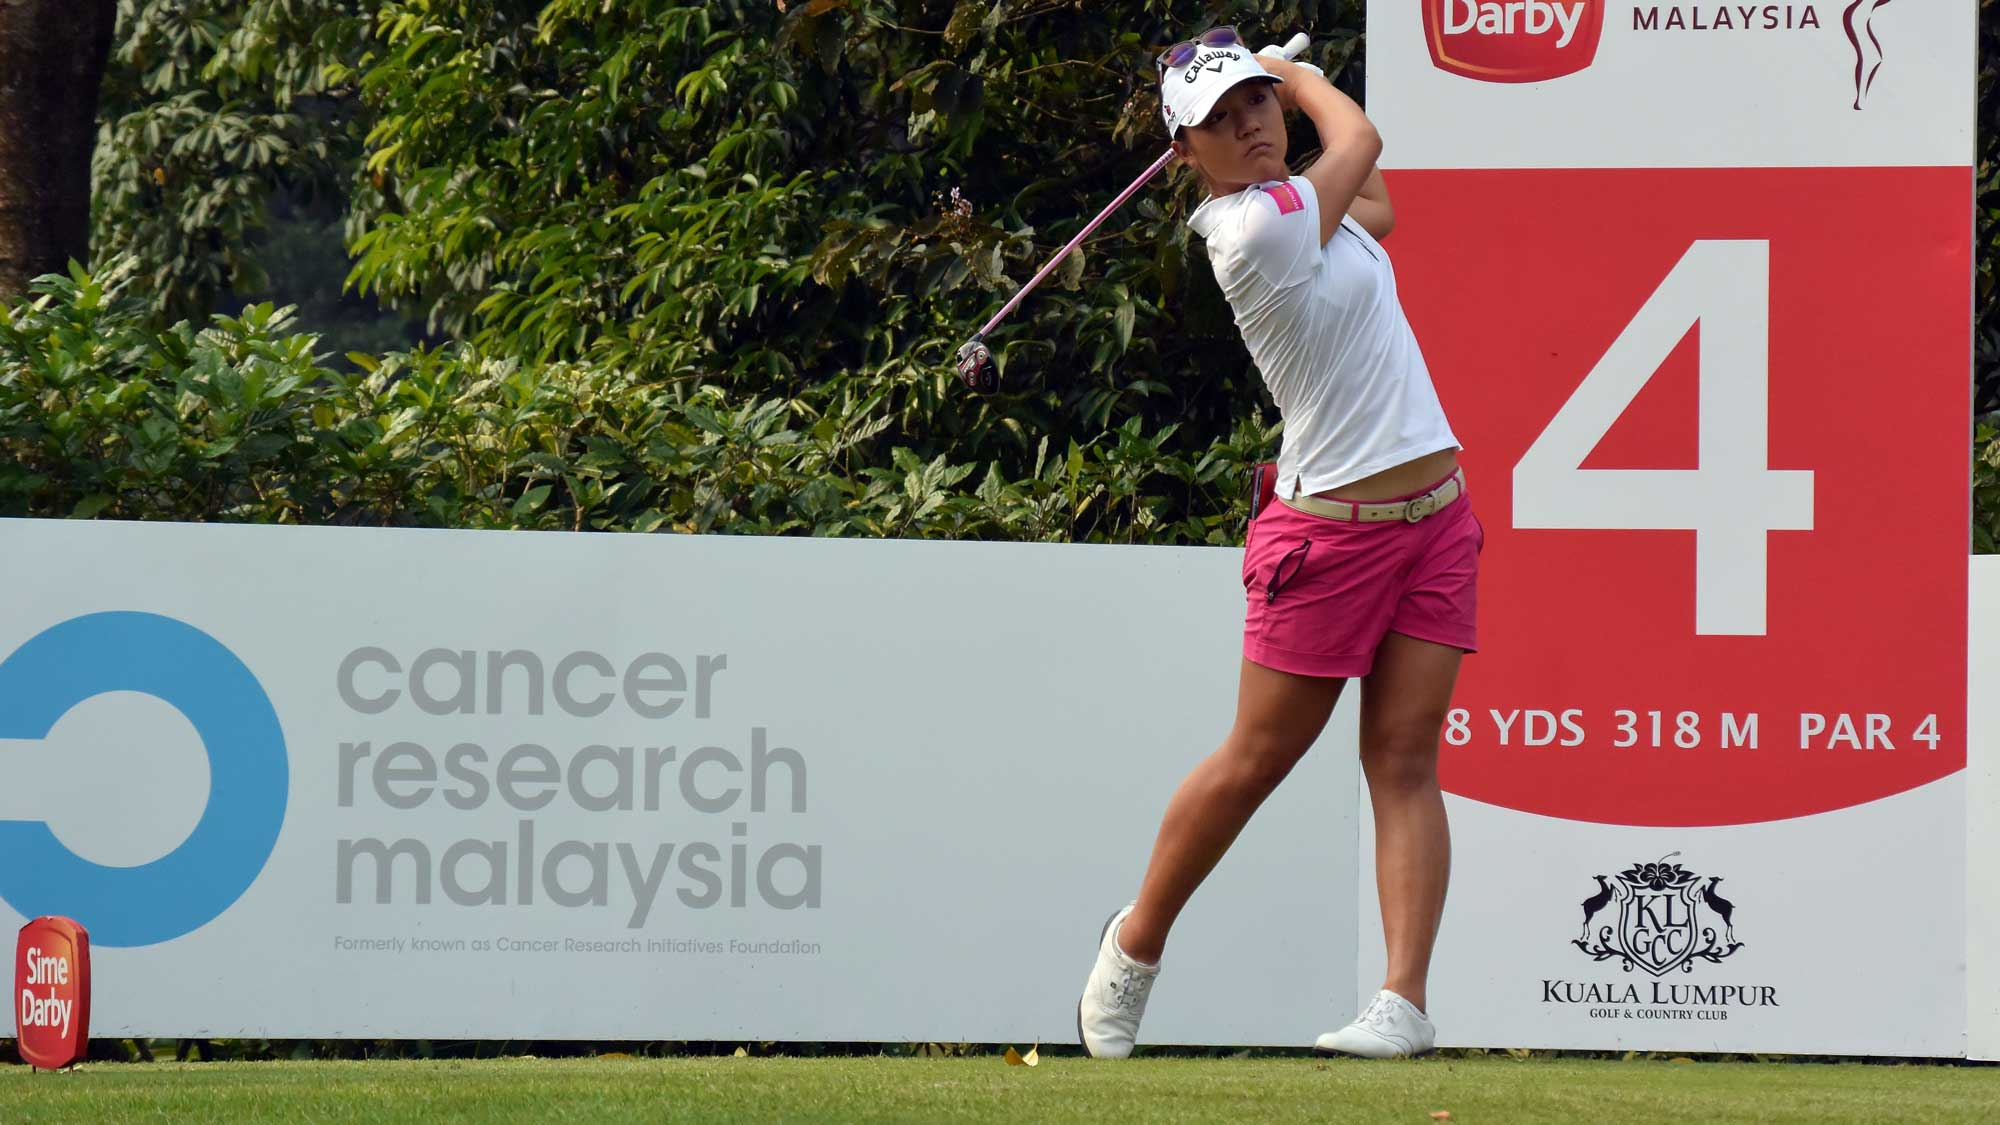 Lydia Ko of New Zealand watches her tee shot on the 4th hole during round three of the Sime Darby LPGA Tour at Kuala Lumpur Golf & Country Club